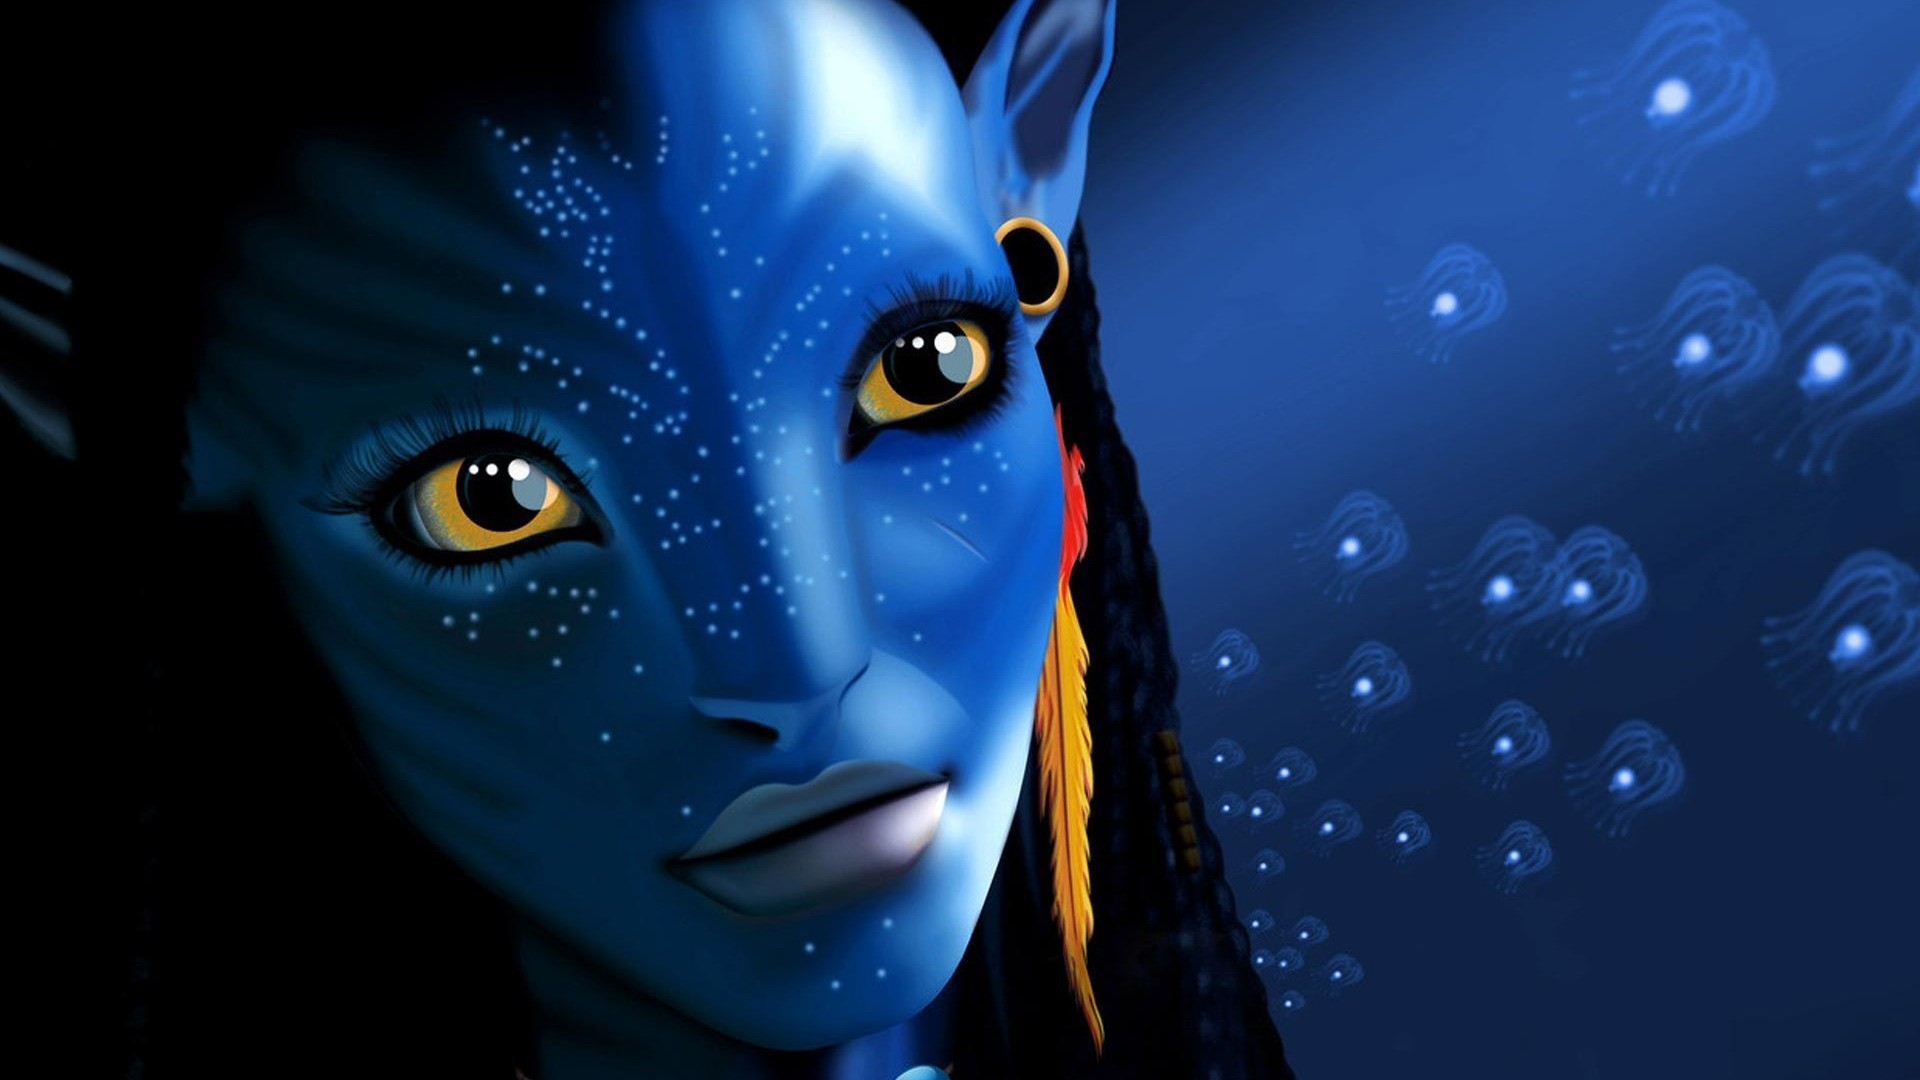 Avatar hd wallpapers 1080p 65 images - M416 wallpaper ...